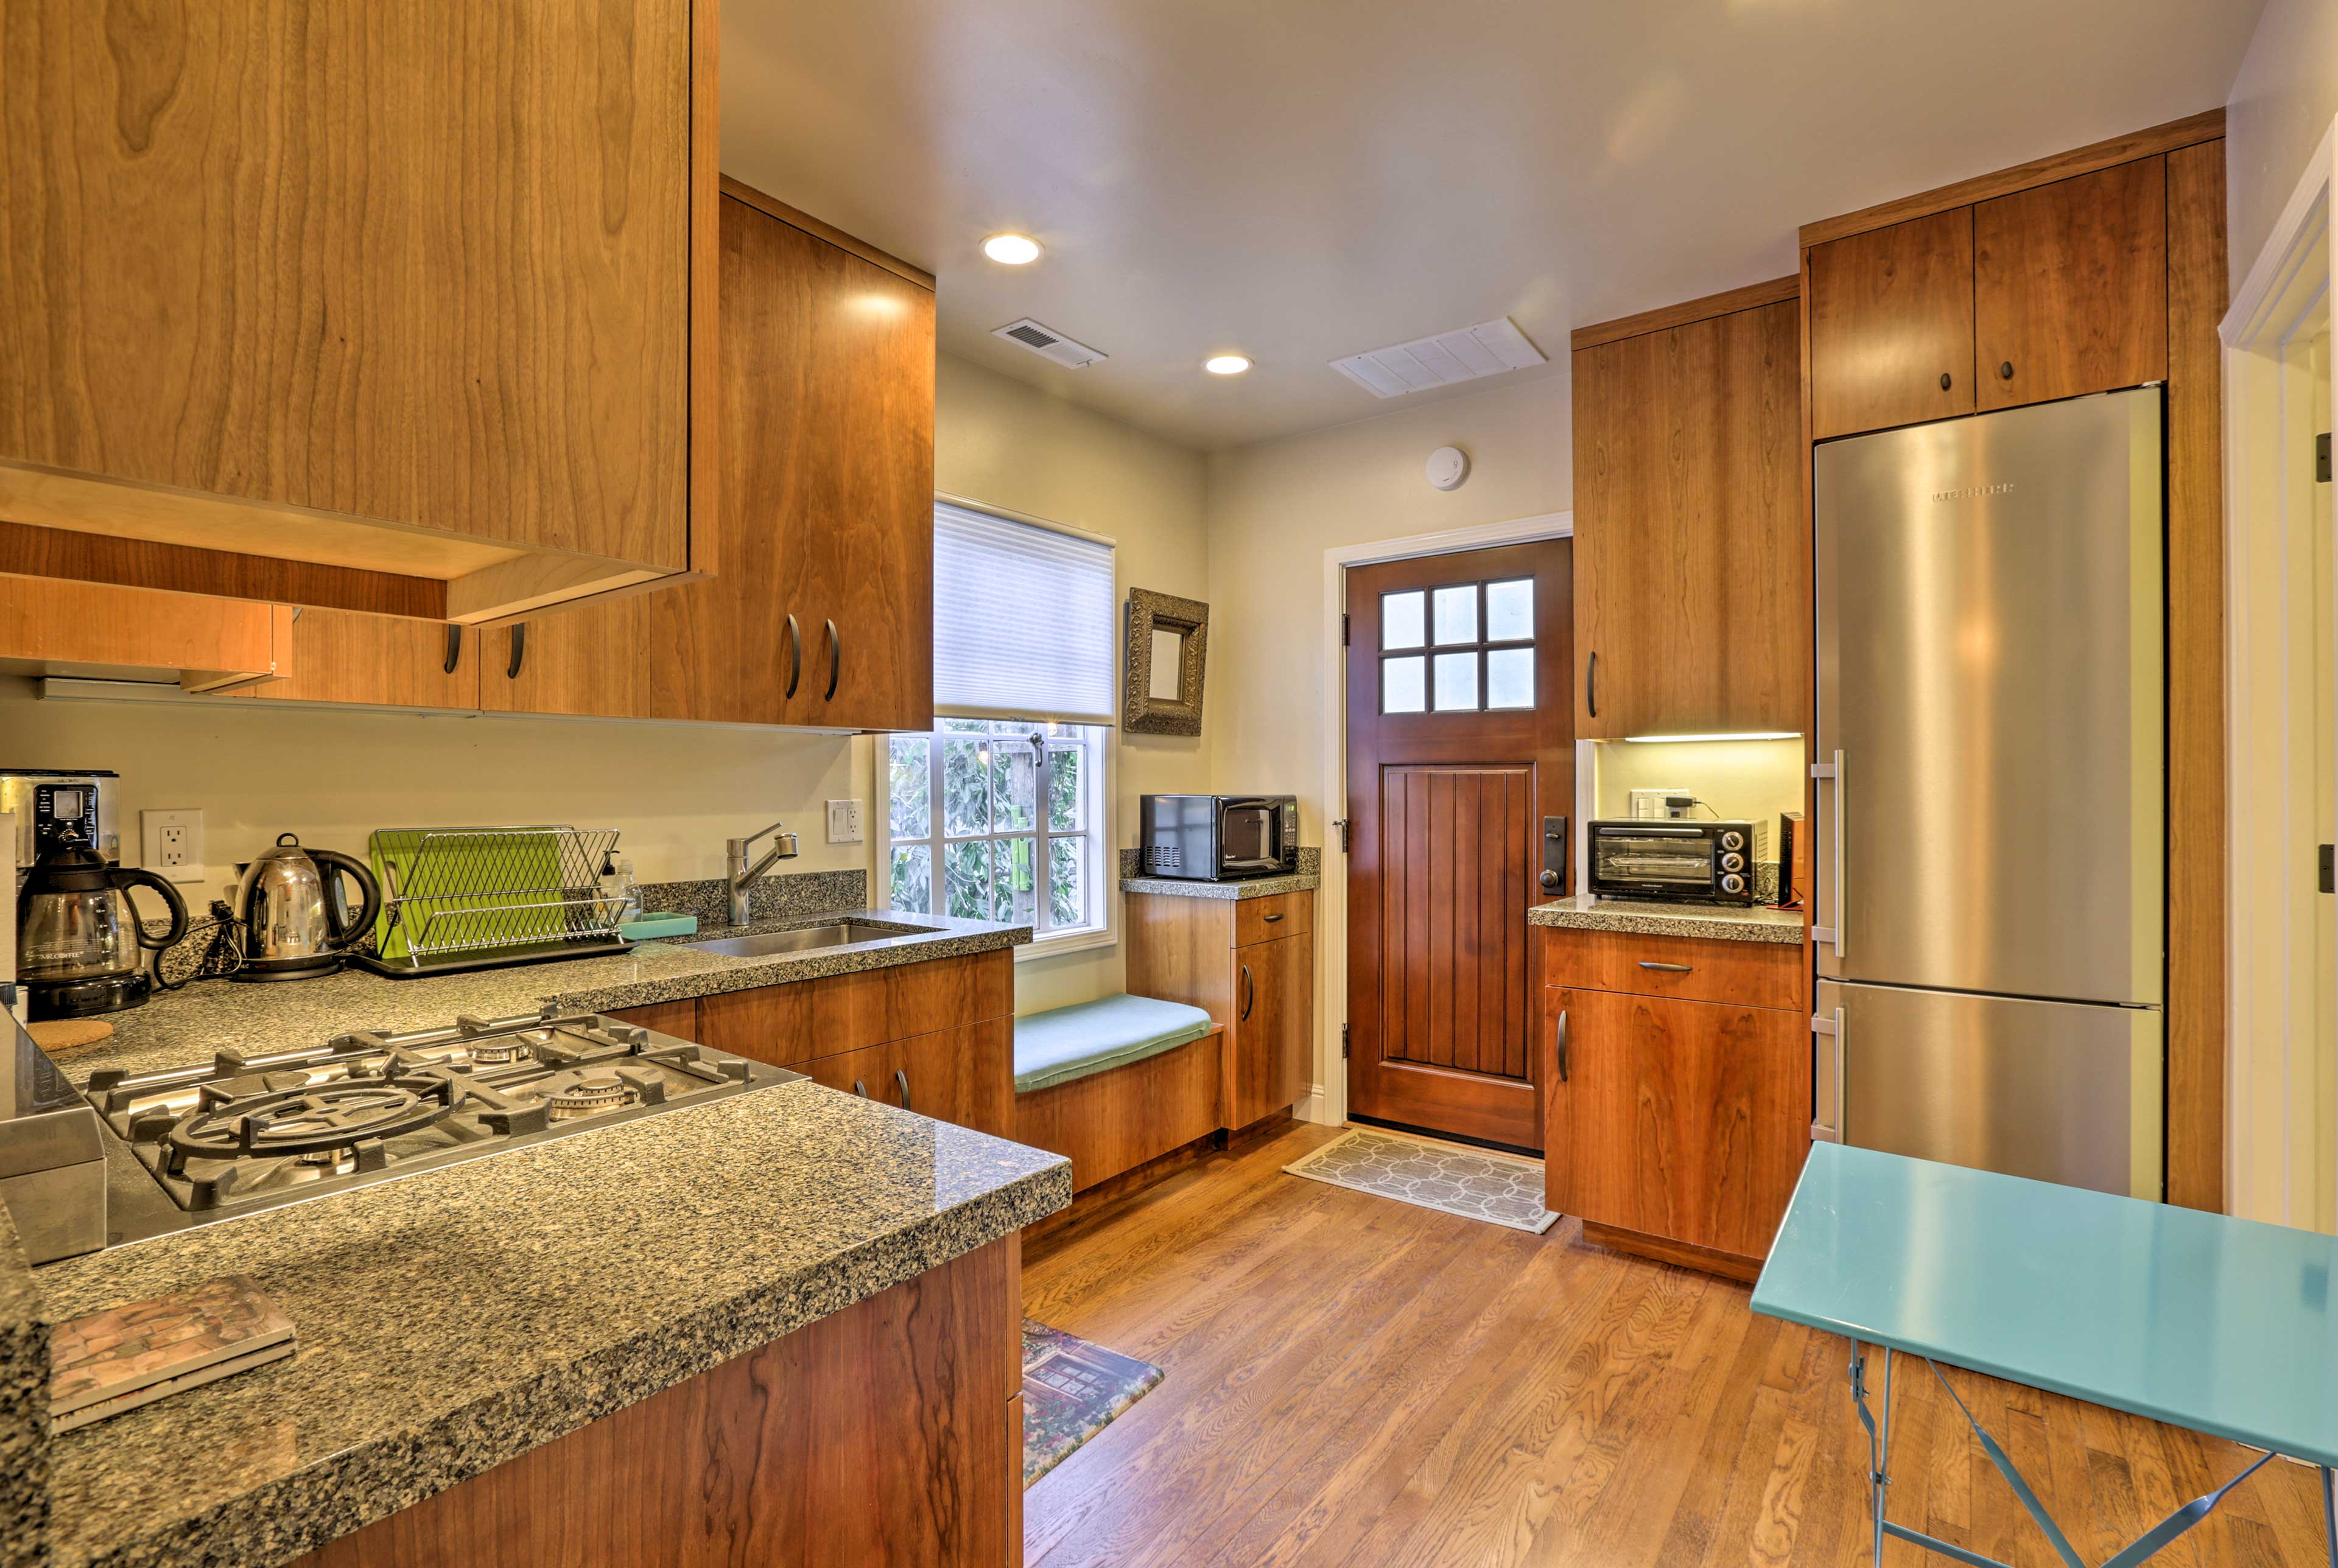 You'll have a fully equipped kitchen to utilize on the nights spent dining in.